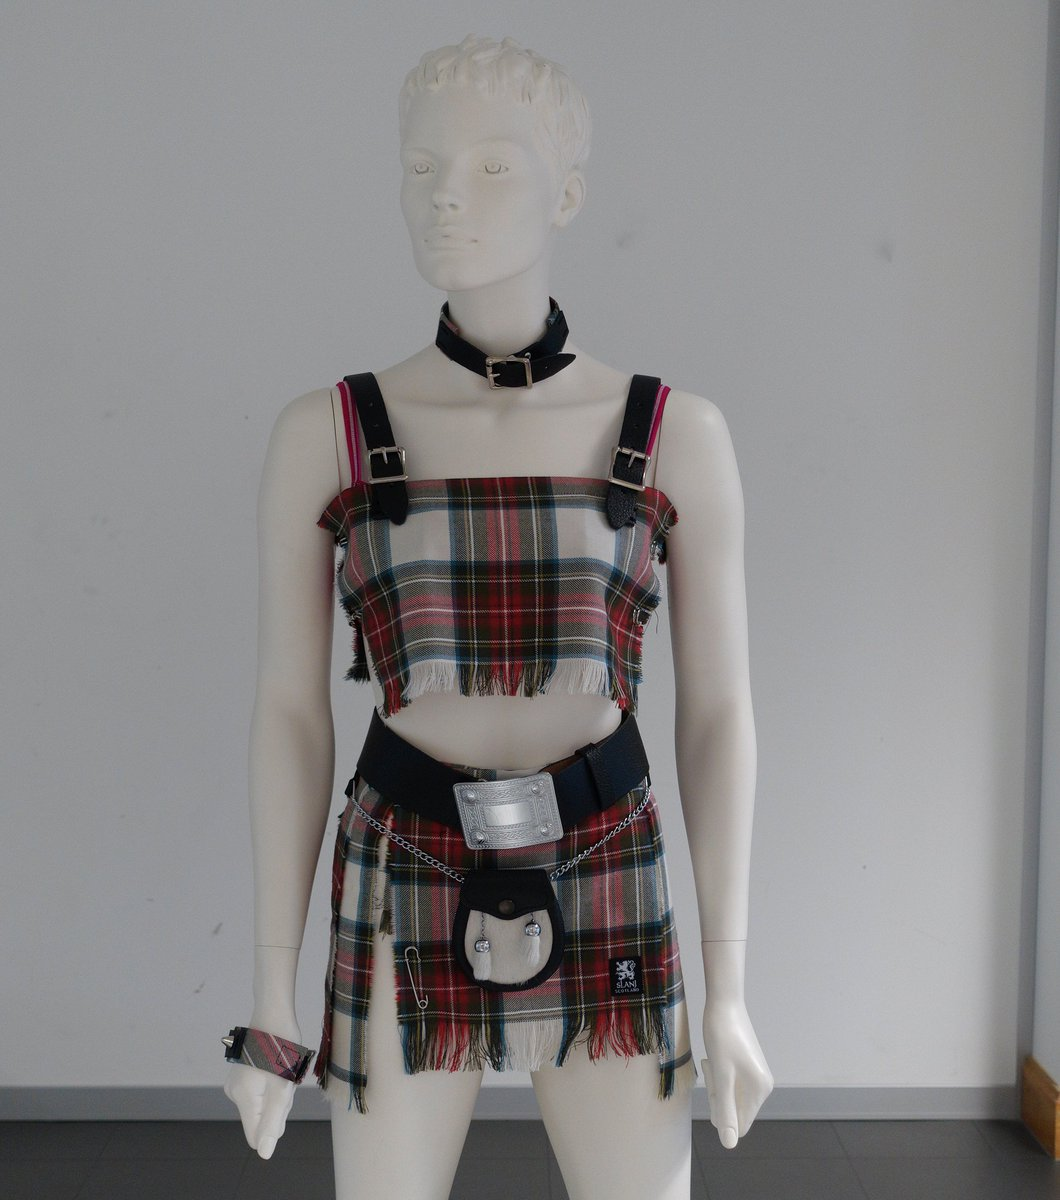 Bid now - bra signed by @OfficialRollers & exclusively created by @slanjkilts #EdFashionWeek https://t.co/sfhCP4fVPV https://t.co/soUvgOgjgE